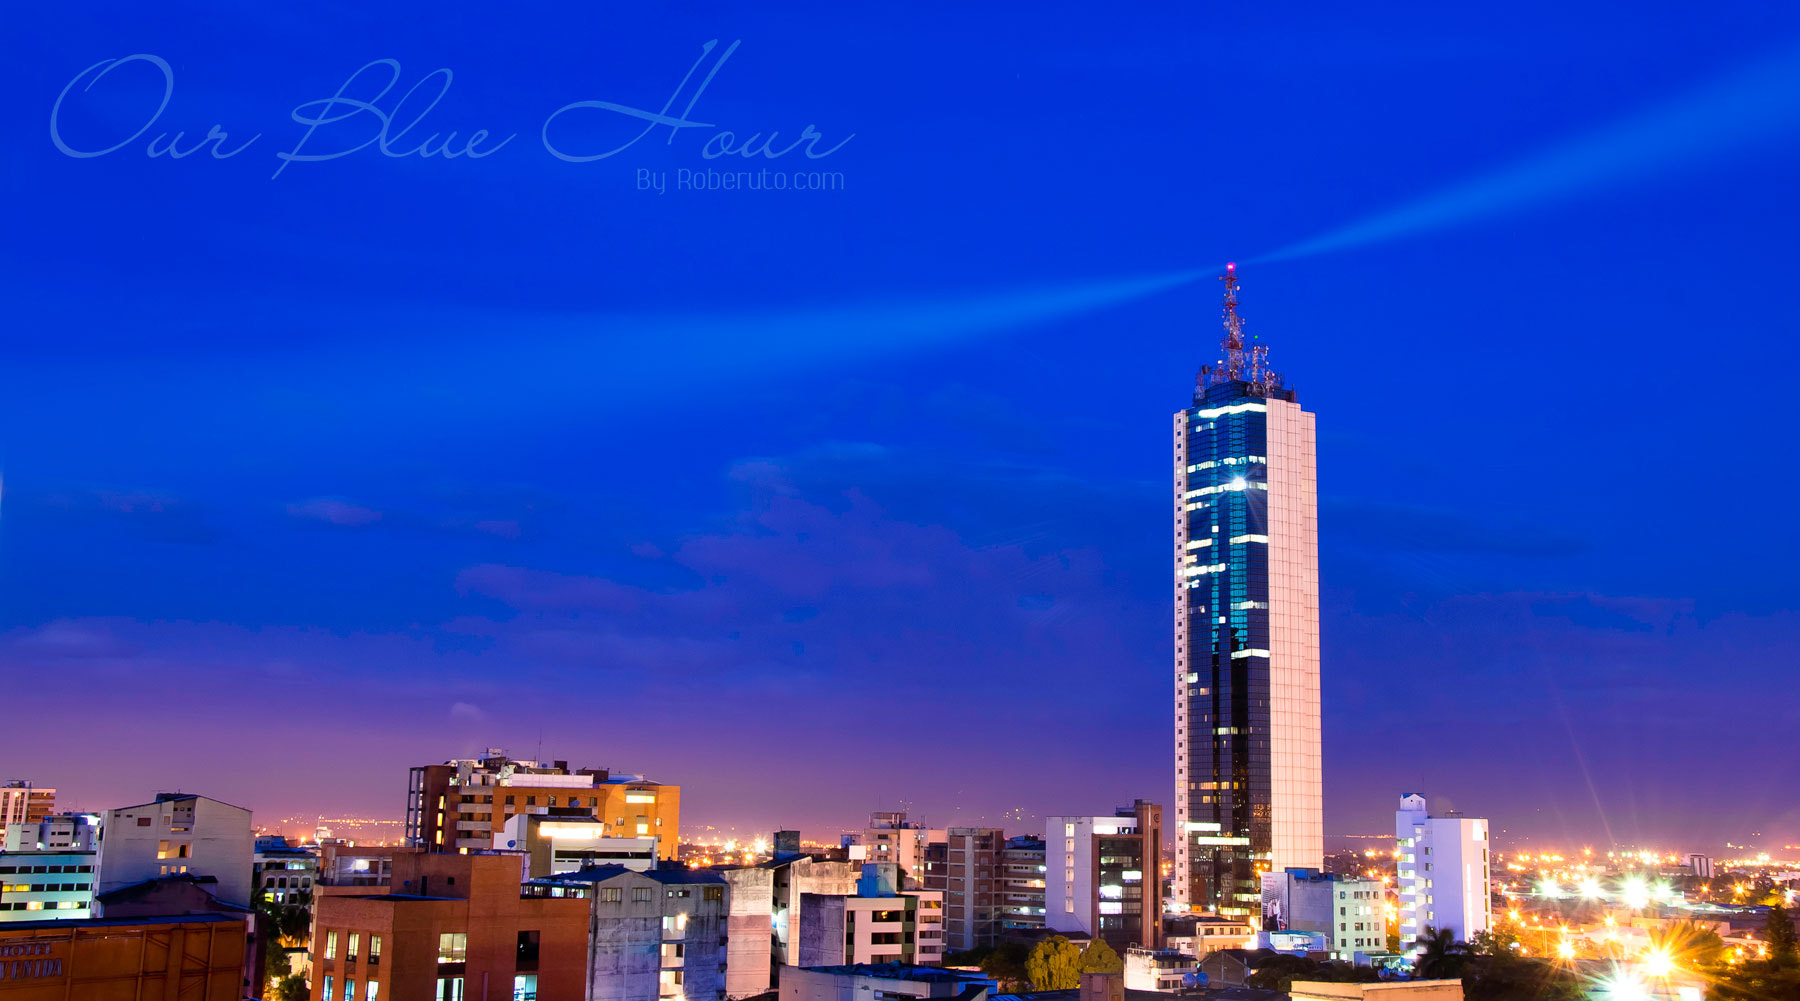 Photograph Our Blue Hour by Roberuto ロベルト on 500px